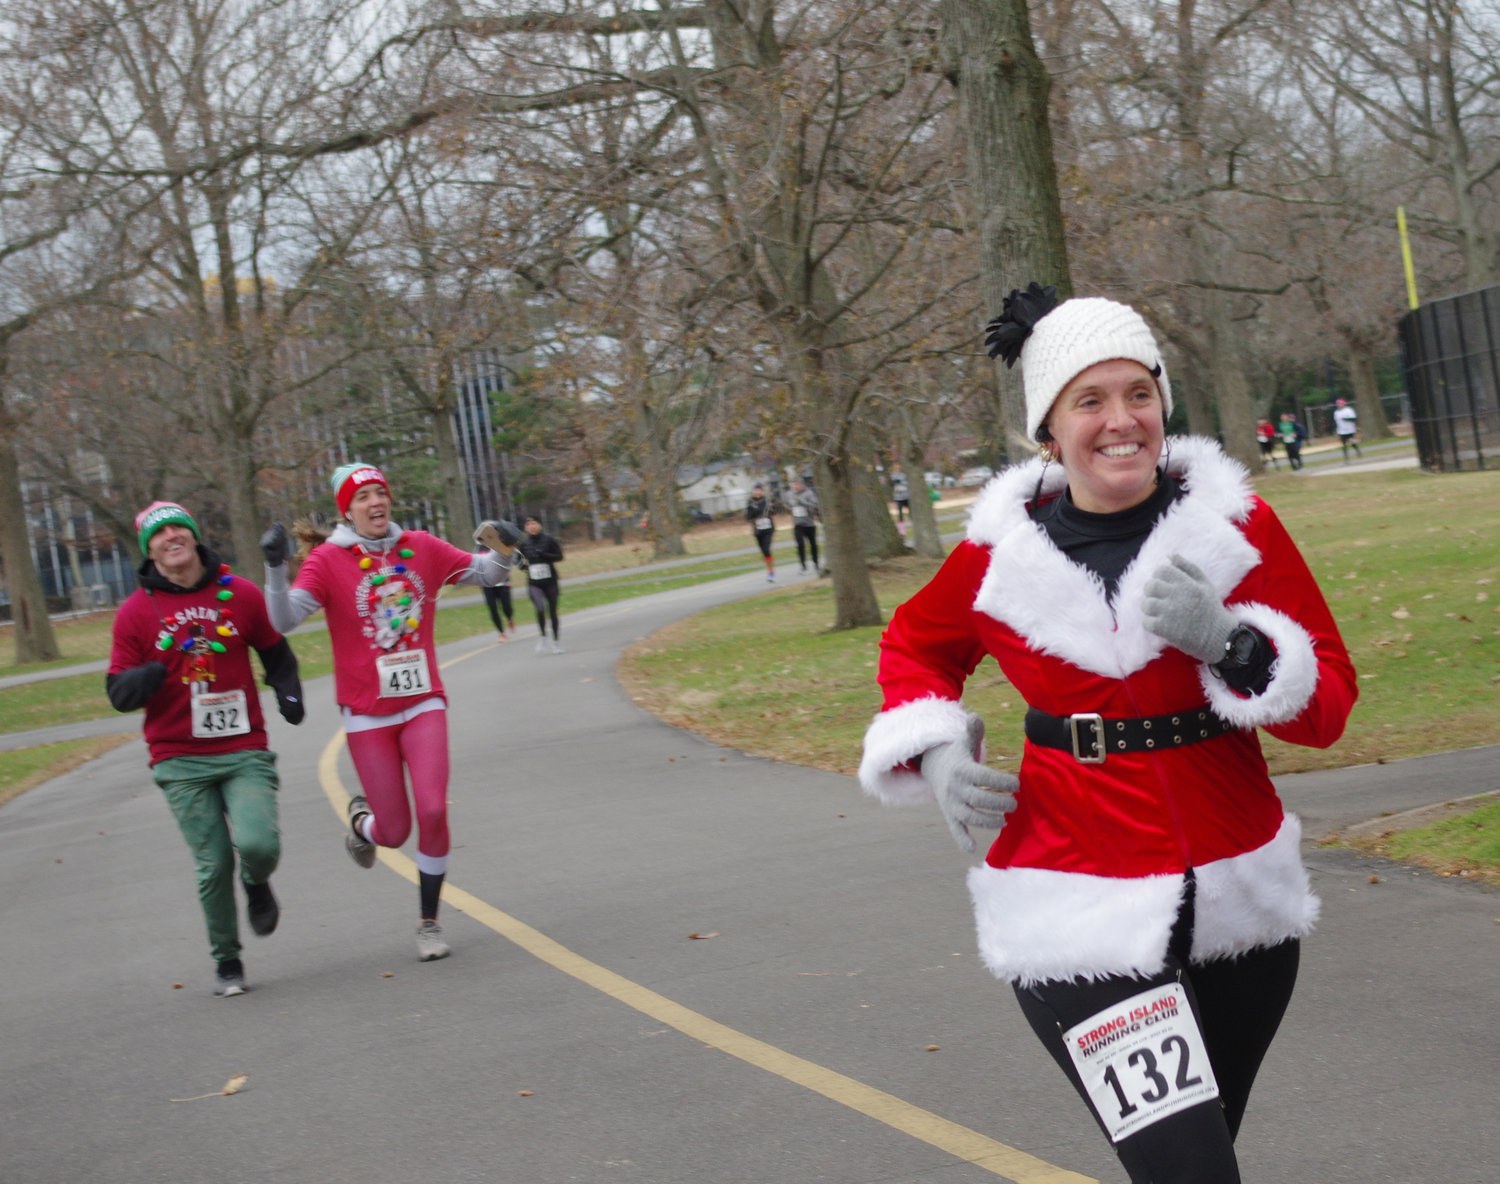 Dawn Konopka, 40, joined dozens of runners who dressed as Santa Claus or other festive winter characters as they took part in the League of YES's third annual Santacon 5k Run, Walk and Roll at Eisenhower Park on Dec. 1. Following behind her was Joe Mascaretti, 35, and Maureen Marzano, 32, both of Rockville Centre.